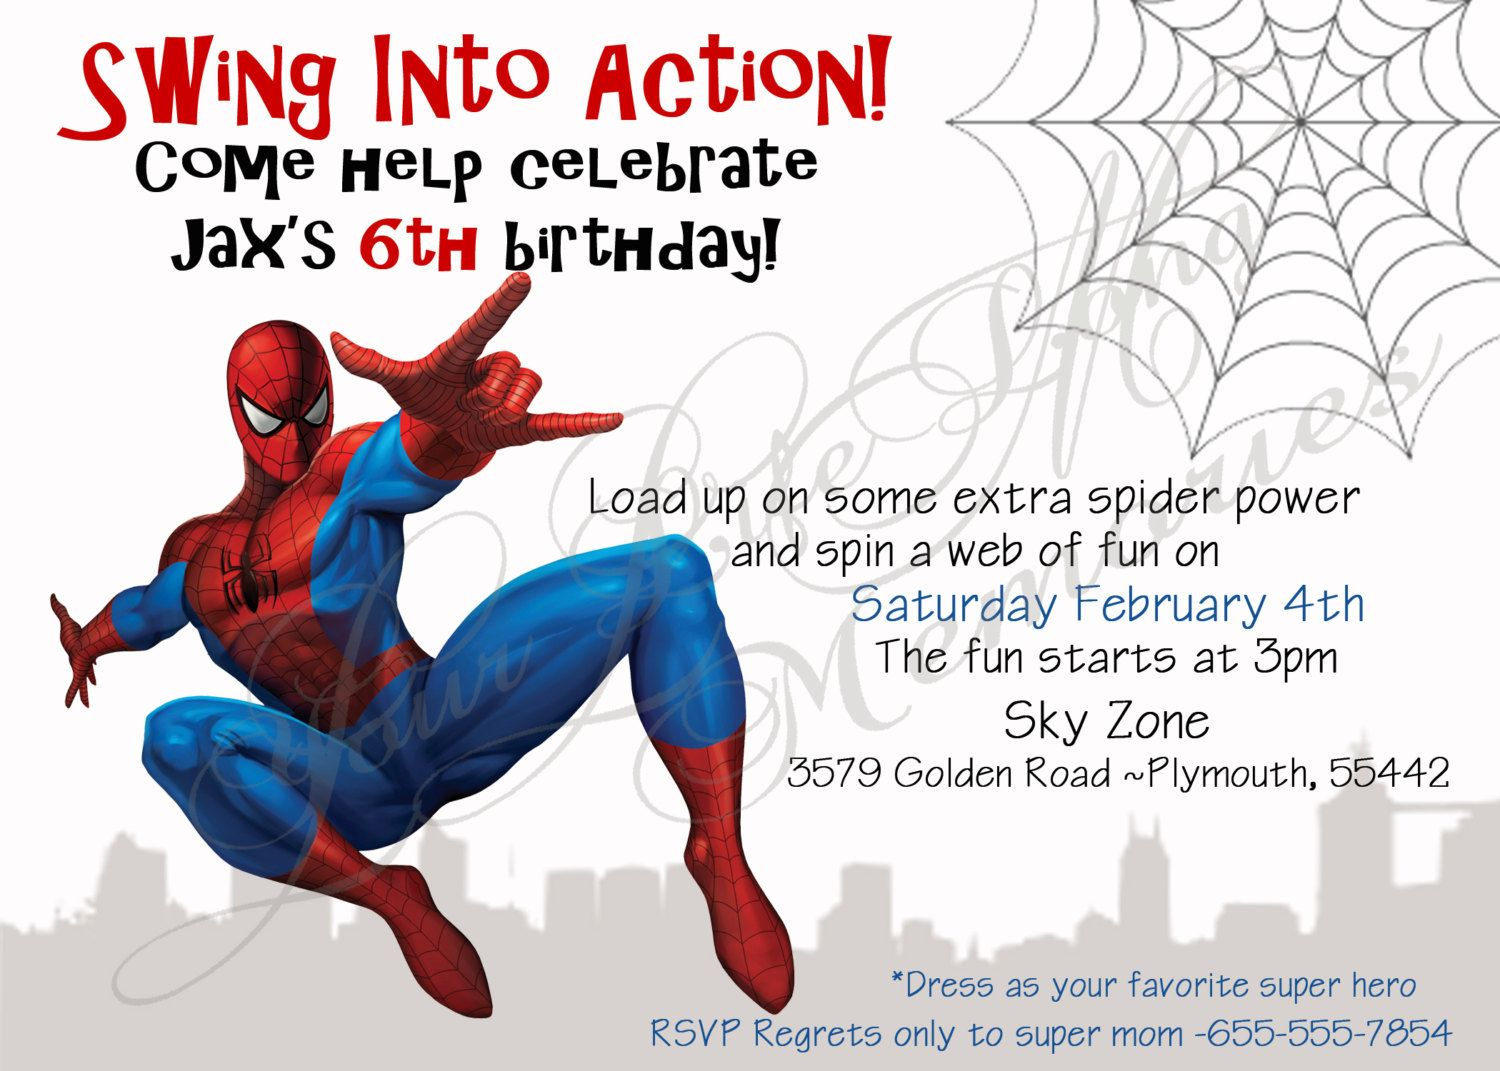 spiderman birthday invites printable free - visit to grab an, Birthday invitations